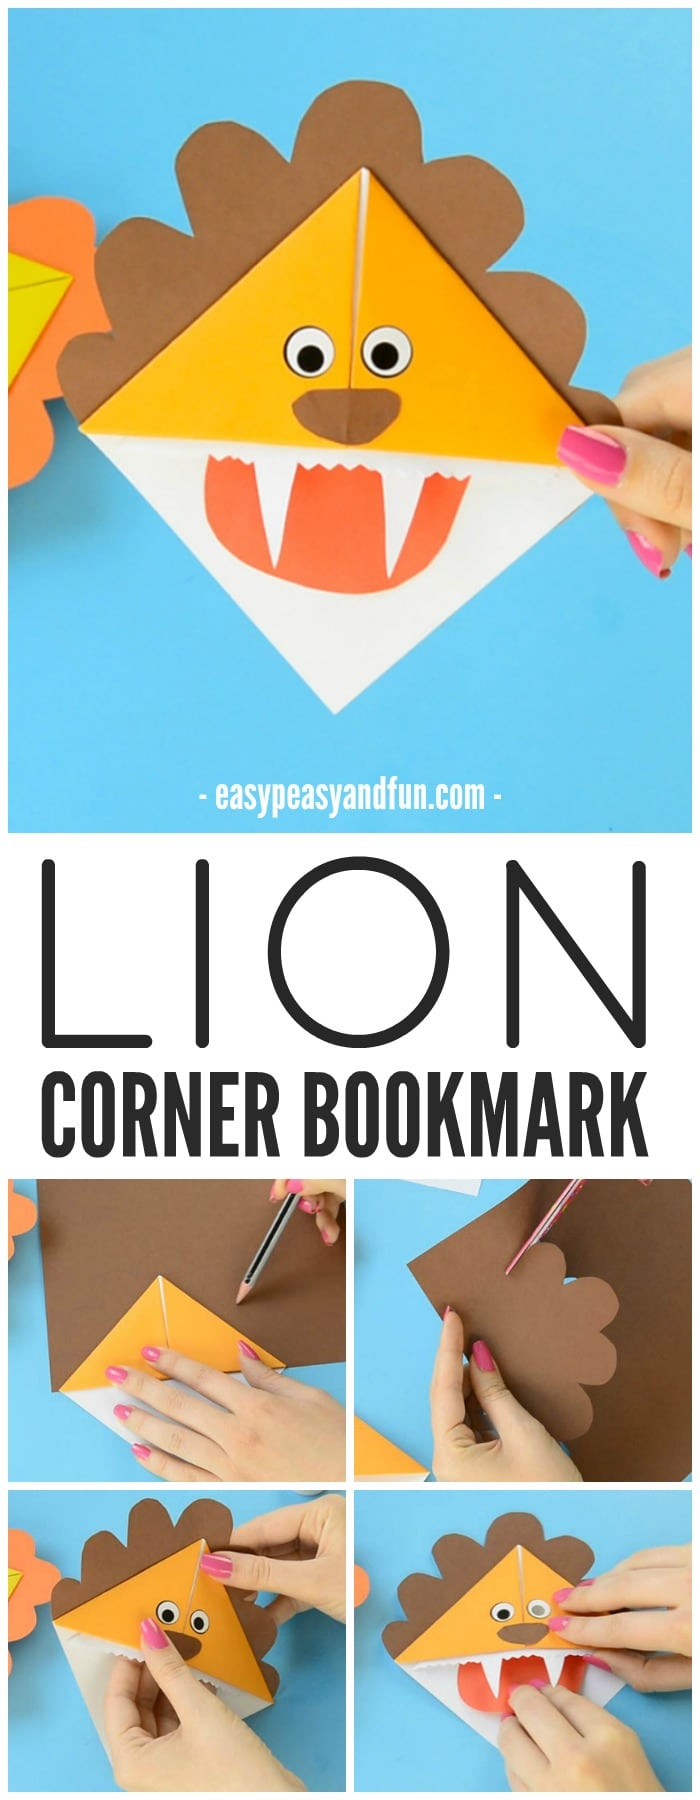 Adorable Lion Corner Bookmarks Origami for Kids